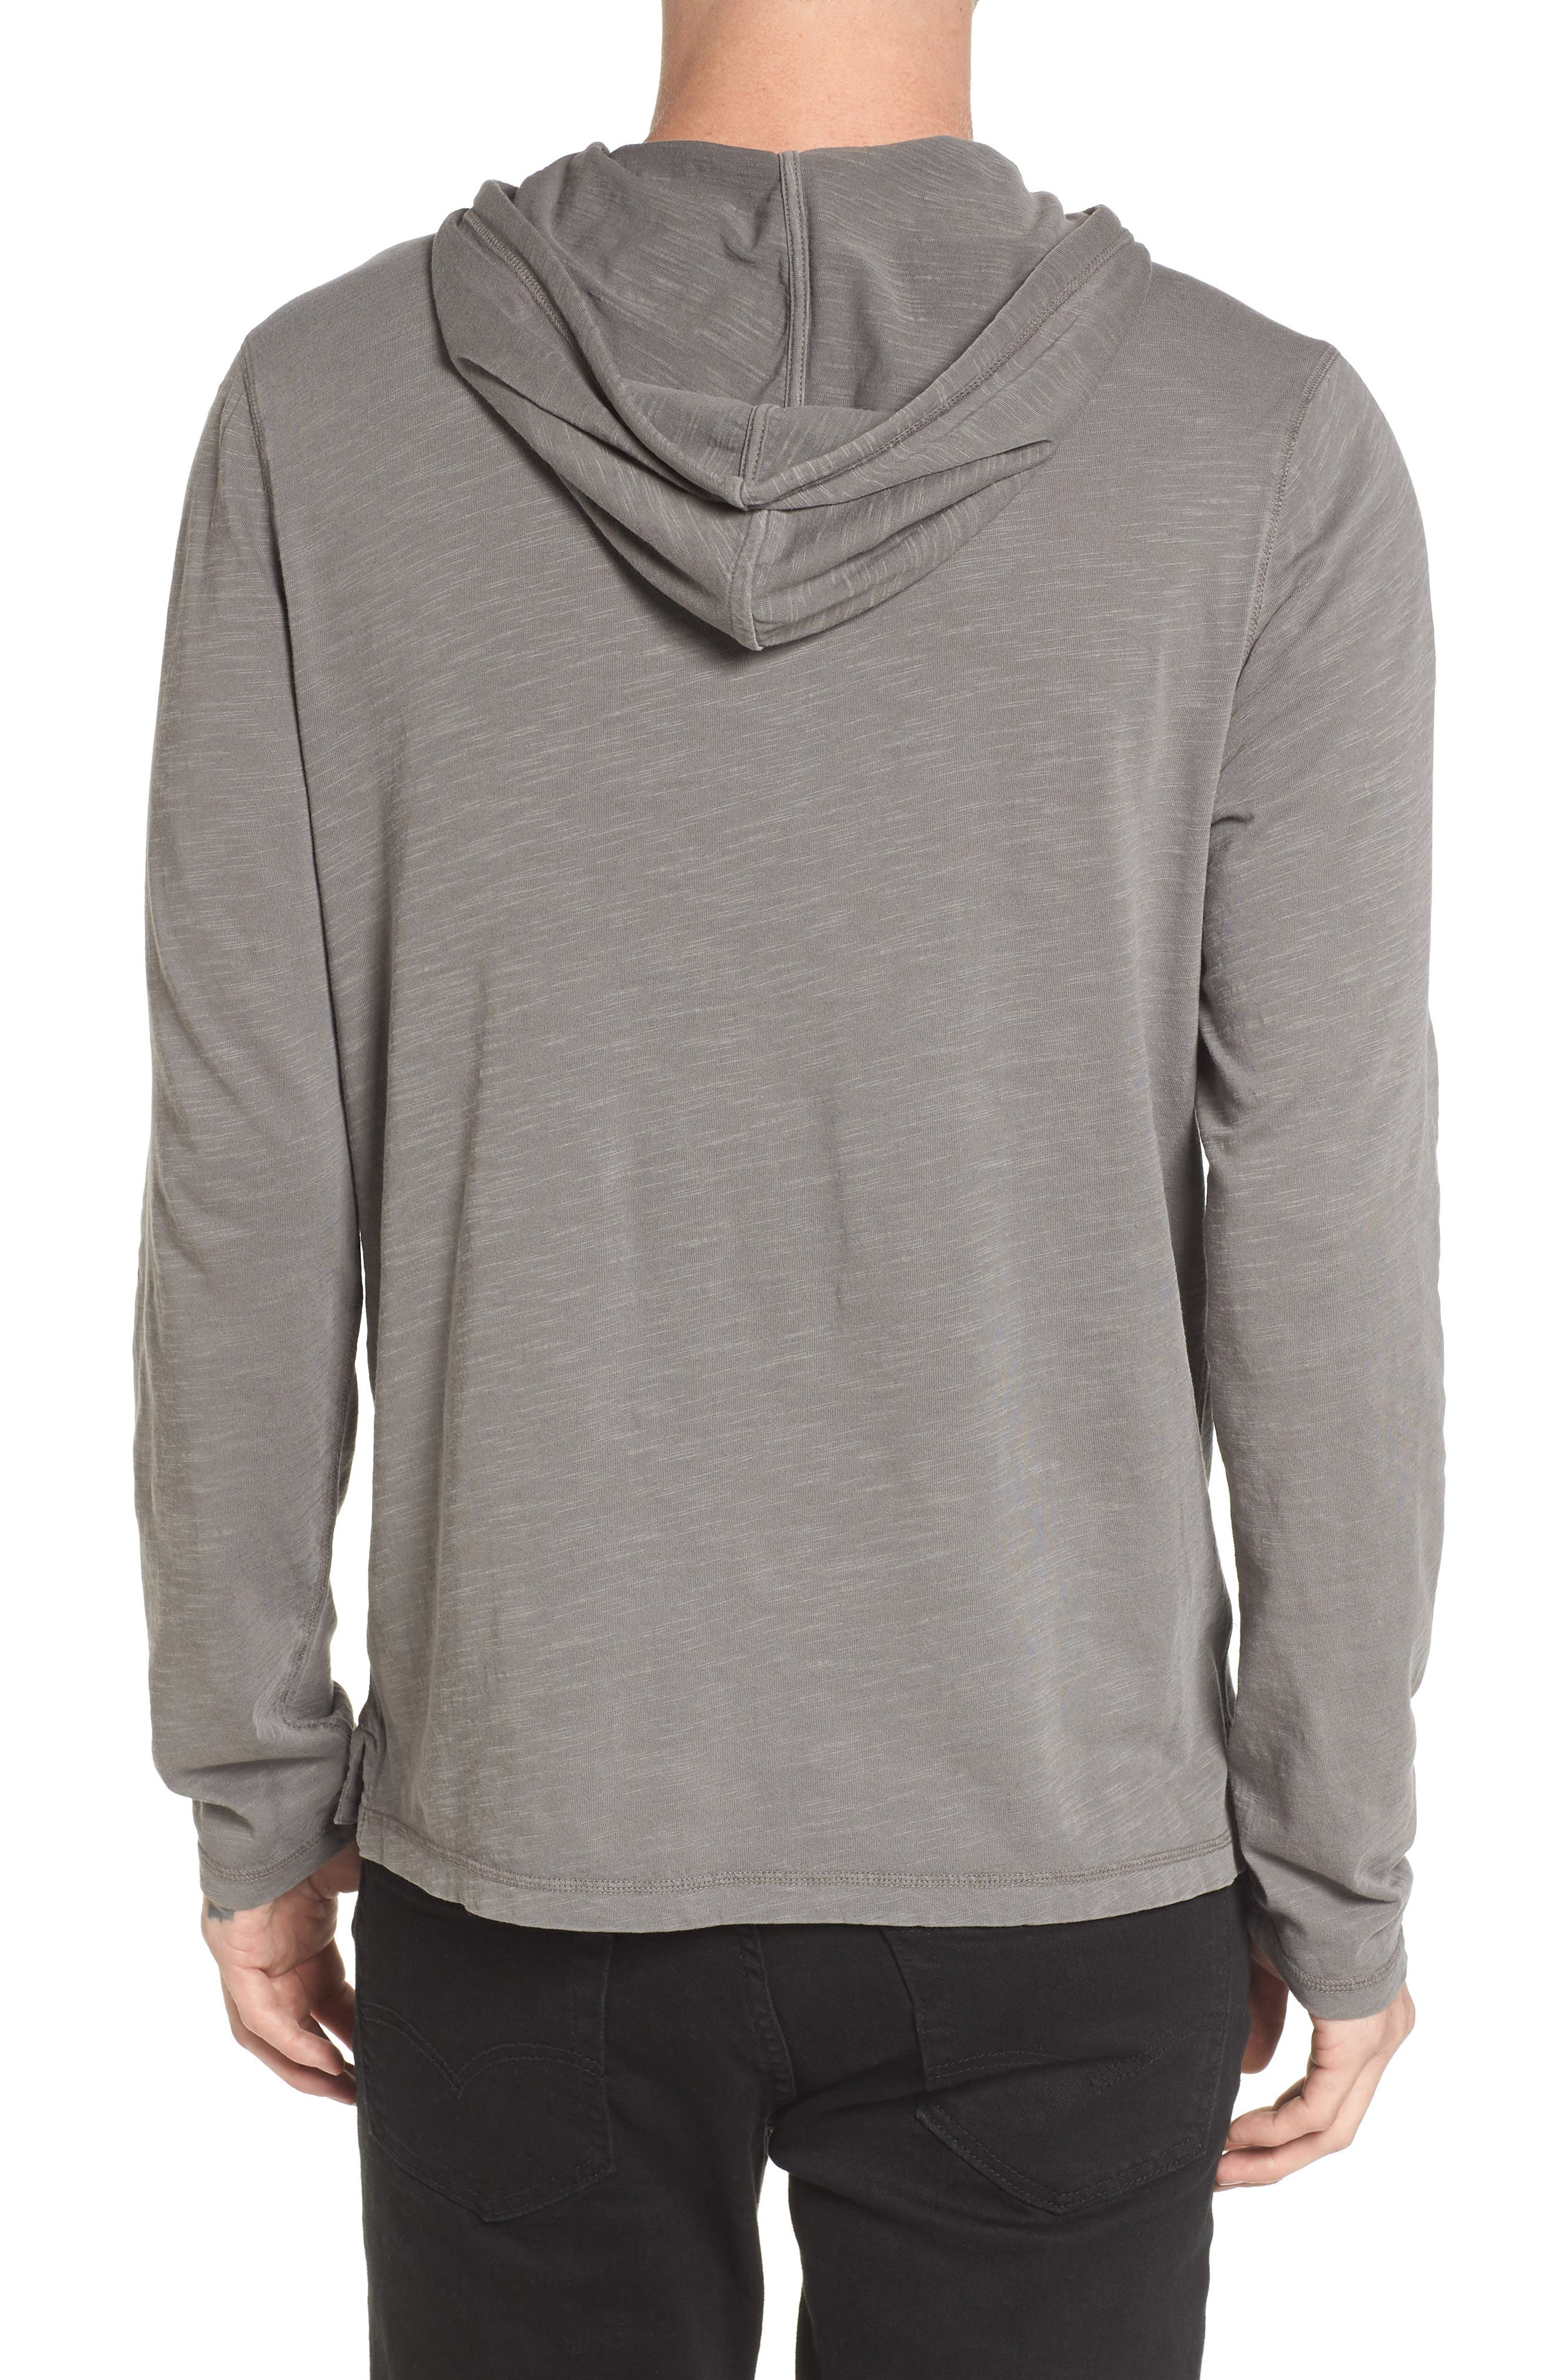 Henley Hoodie,                             Alternate thumbnail 3, color,                             Grey Charcoal